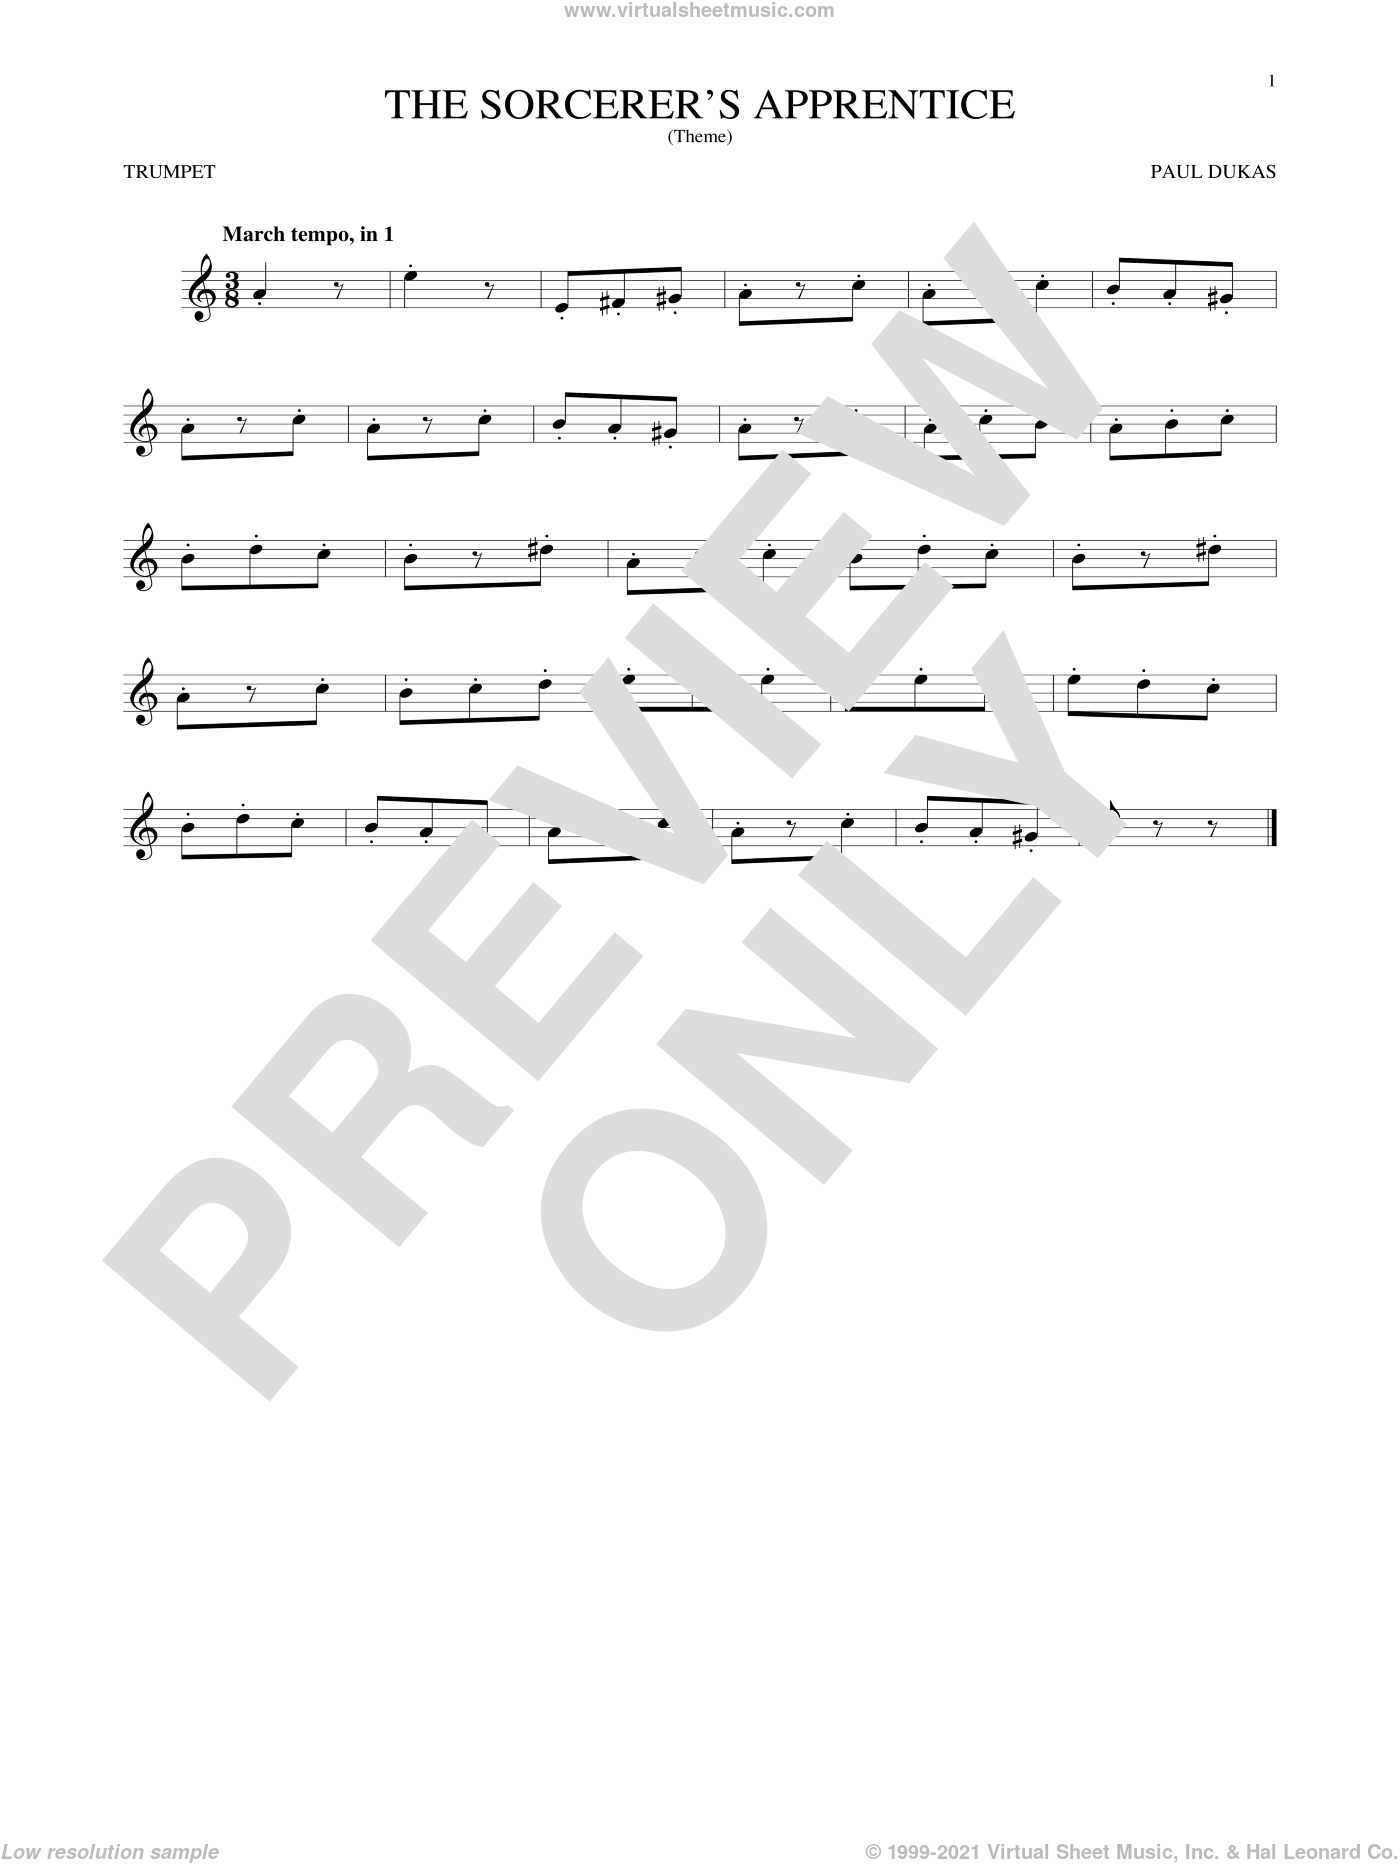 The Sorcerer's Apprentice sheet music for trumpet solo by Paul Dukas, classical score, intermediate skill level